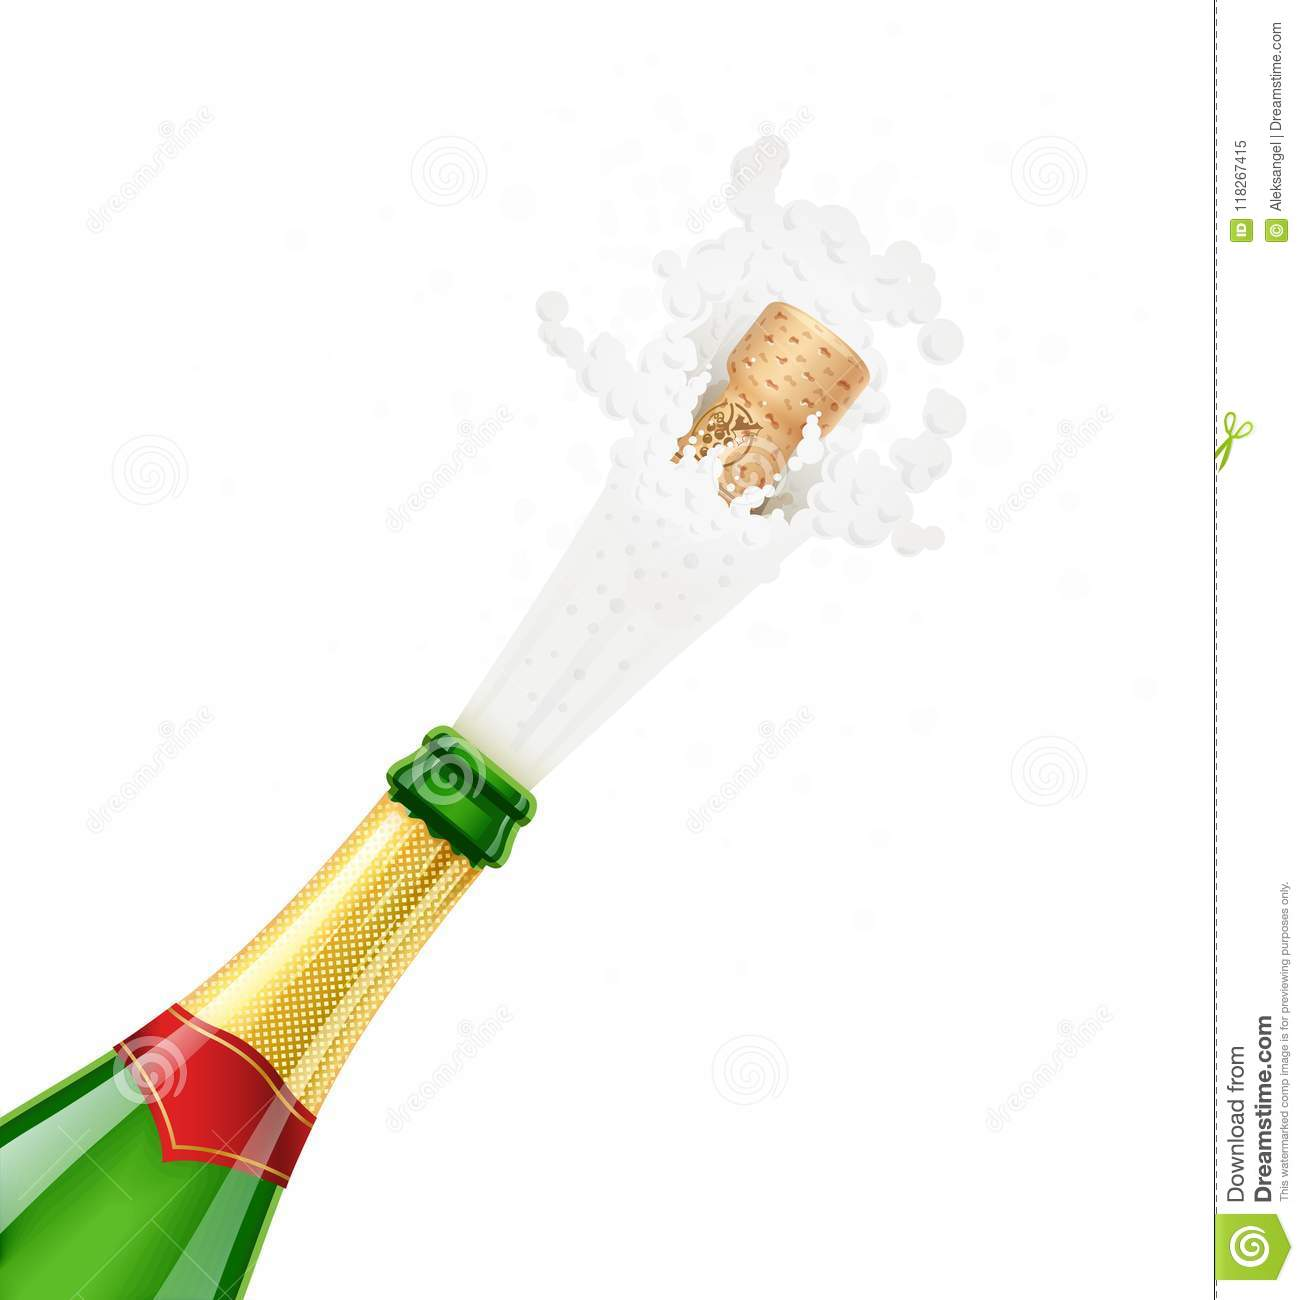 Champagne Bottle Explode Traditional French Alcohol Drink Stock